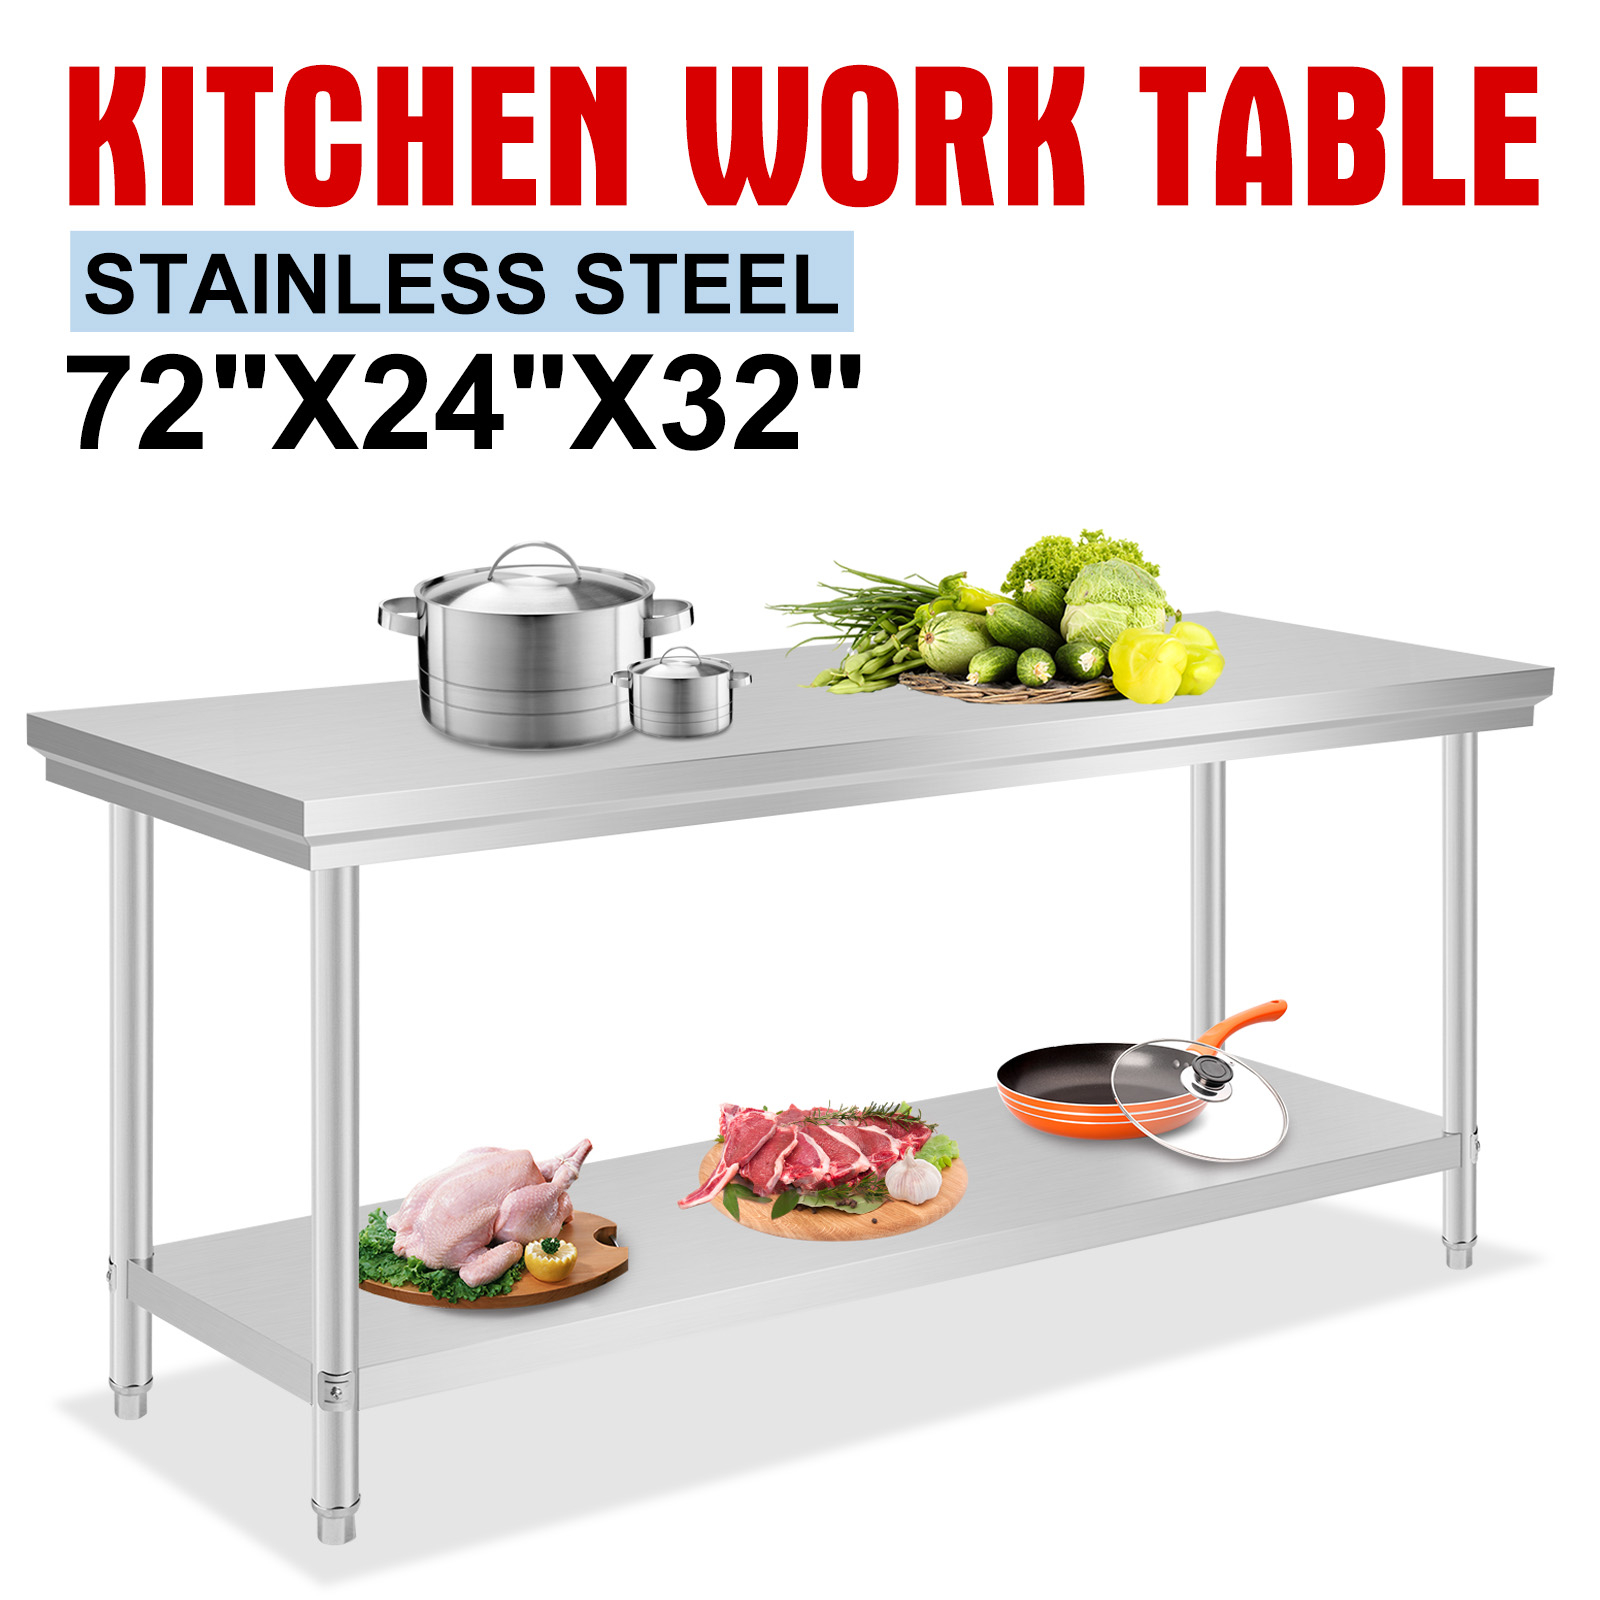 60x180cm kitchen work prep table nsf table food newest design superior quality ebay - Ebay kitchen table ...